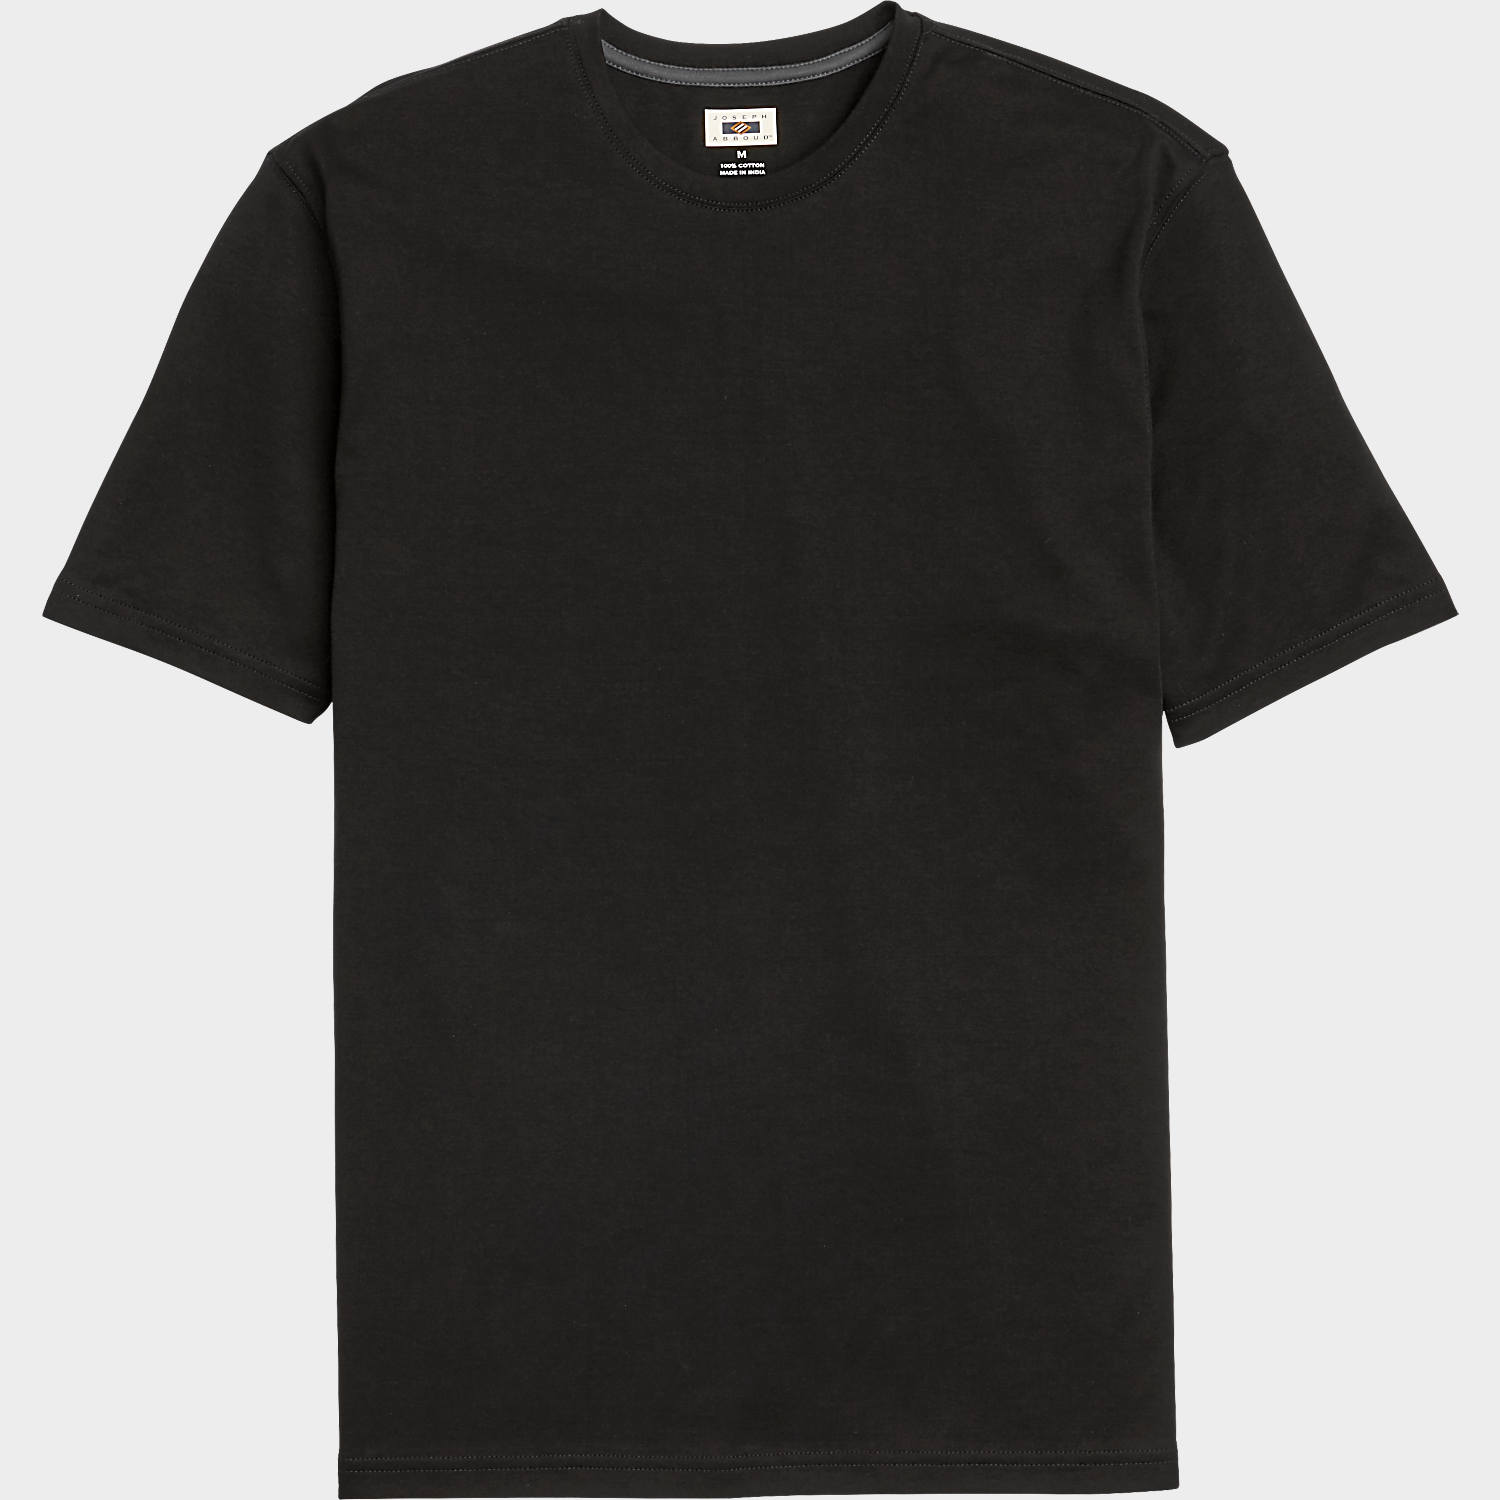 Big & Tall T Shirts - XXL Size T Casual Shirts | Men's Wearhouse